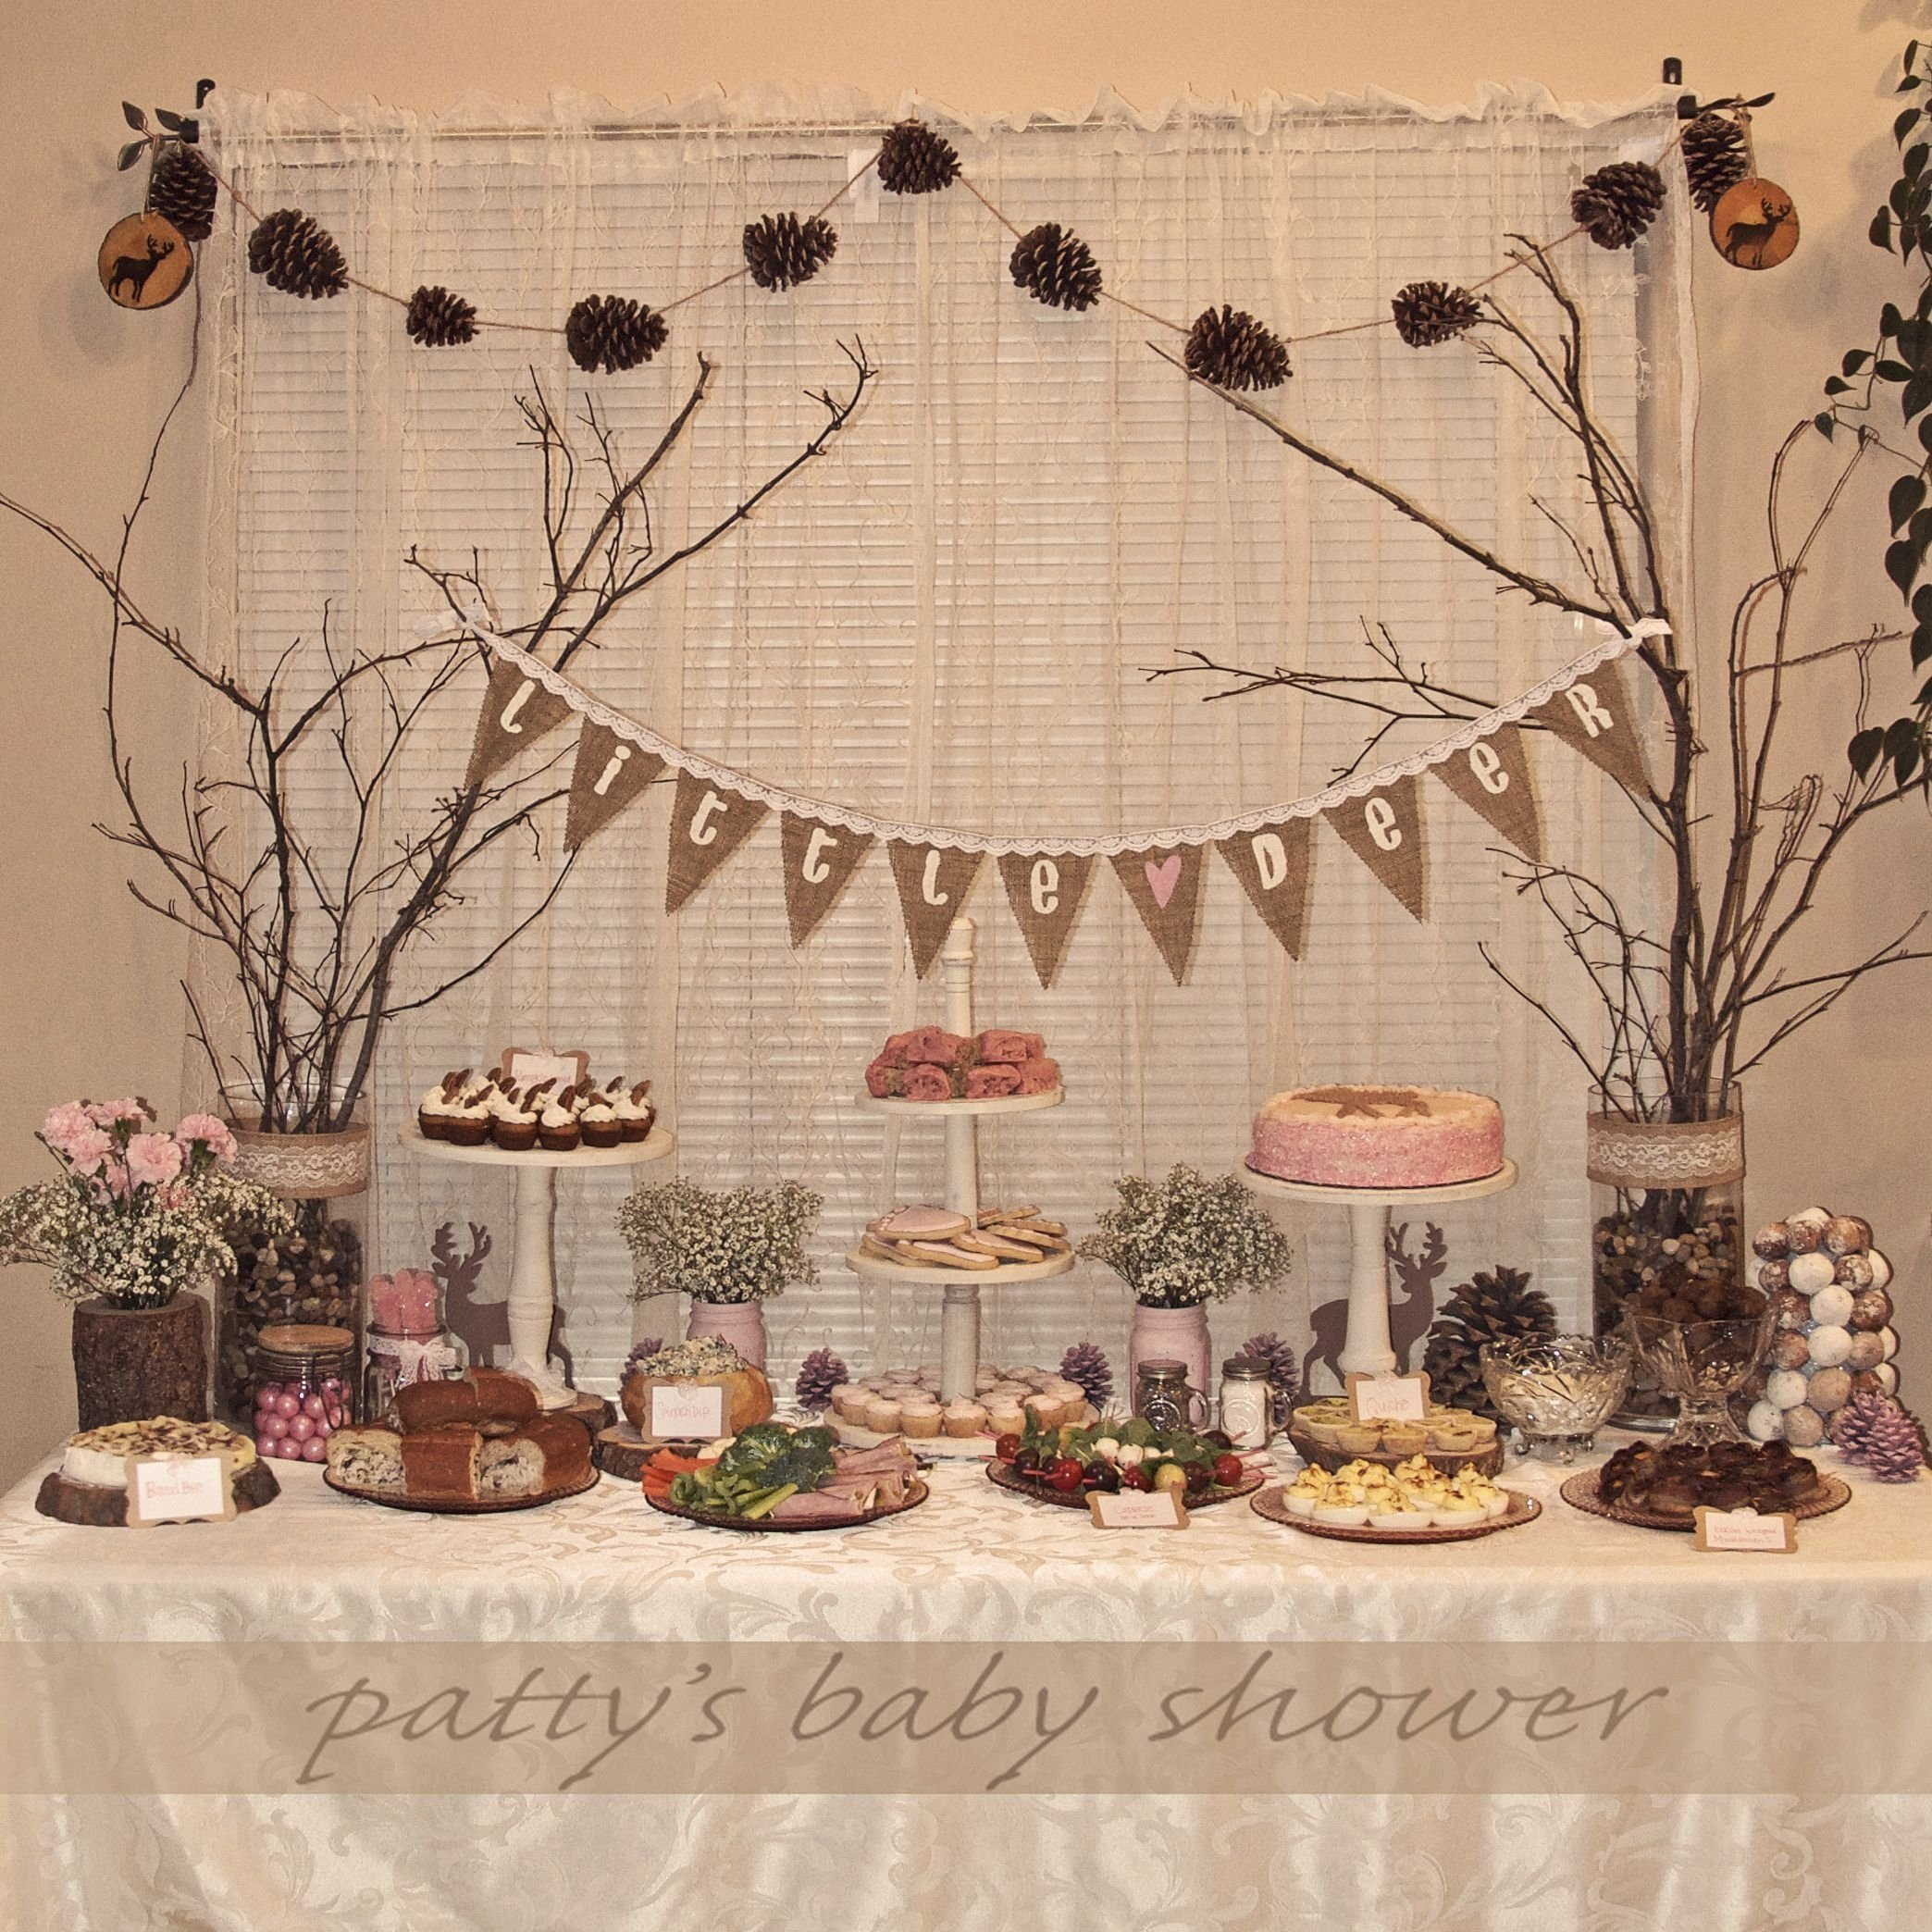 10 Unique Country Themed Baby Shower Ideas rustic baby shower deer theme country pink little deer woodland 1 2021